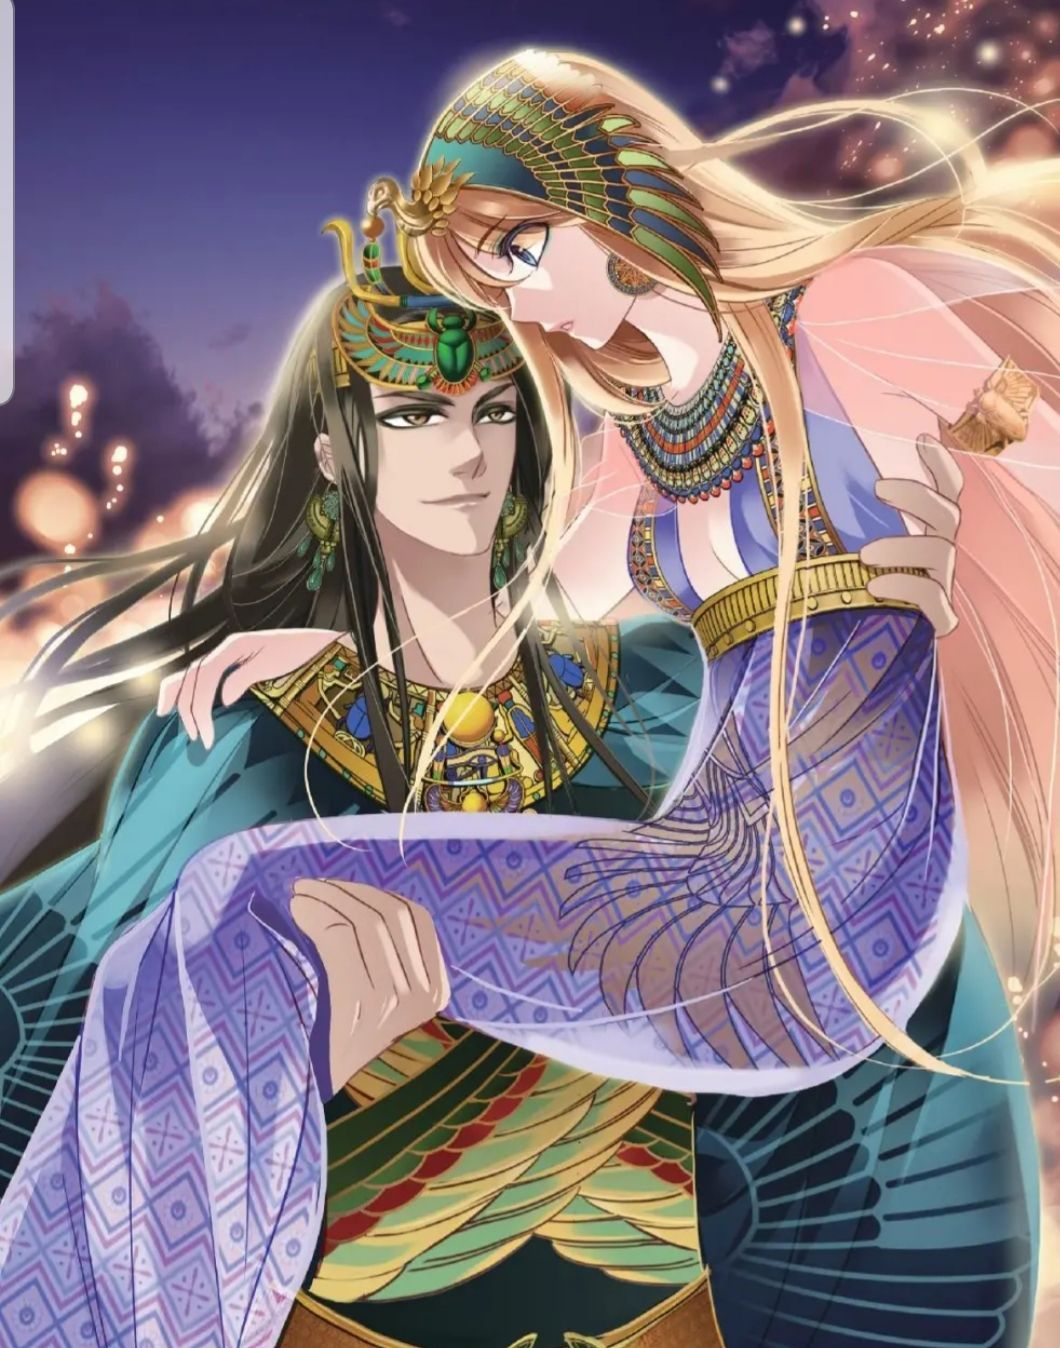 Pharaoh's concubine (MANGA COMPLETED) Episode 4 in 2020